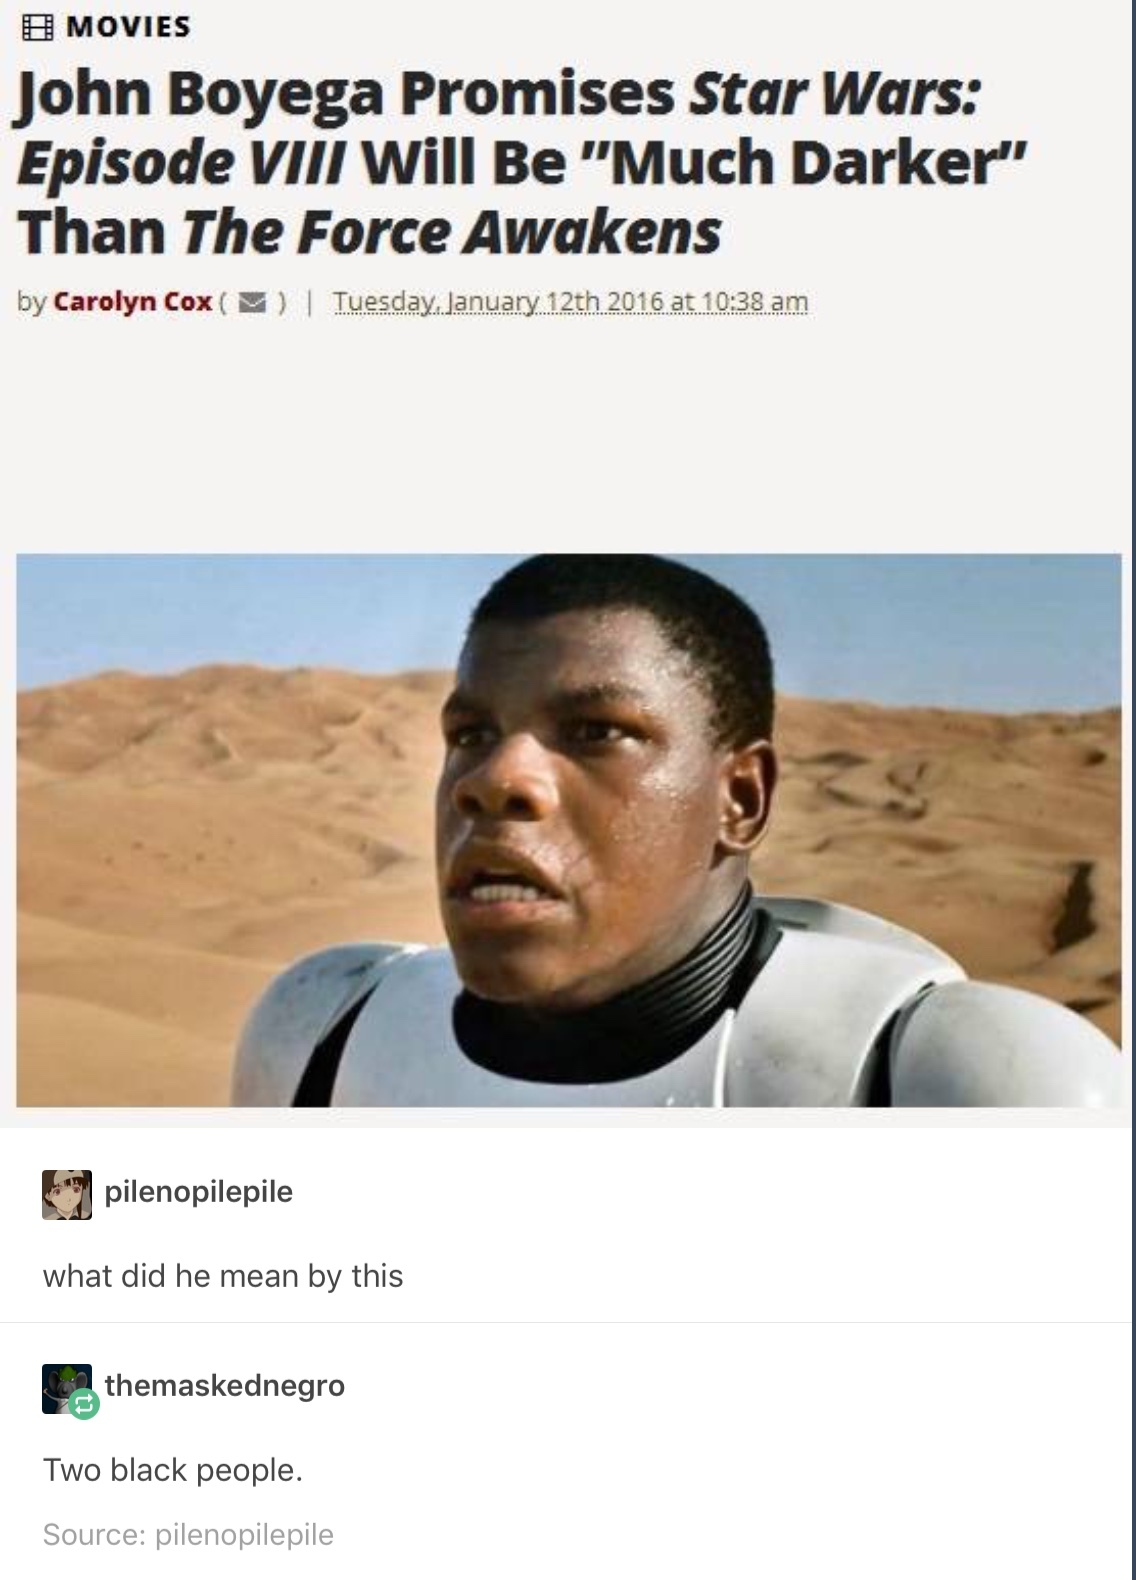 5th comment is a random insignificant storm trooper - meme